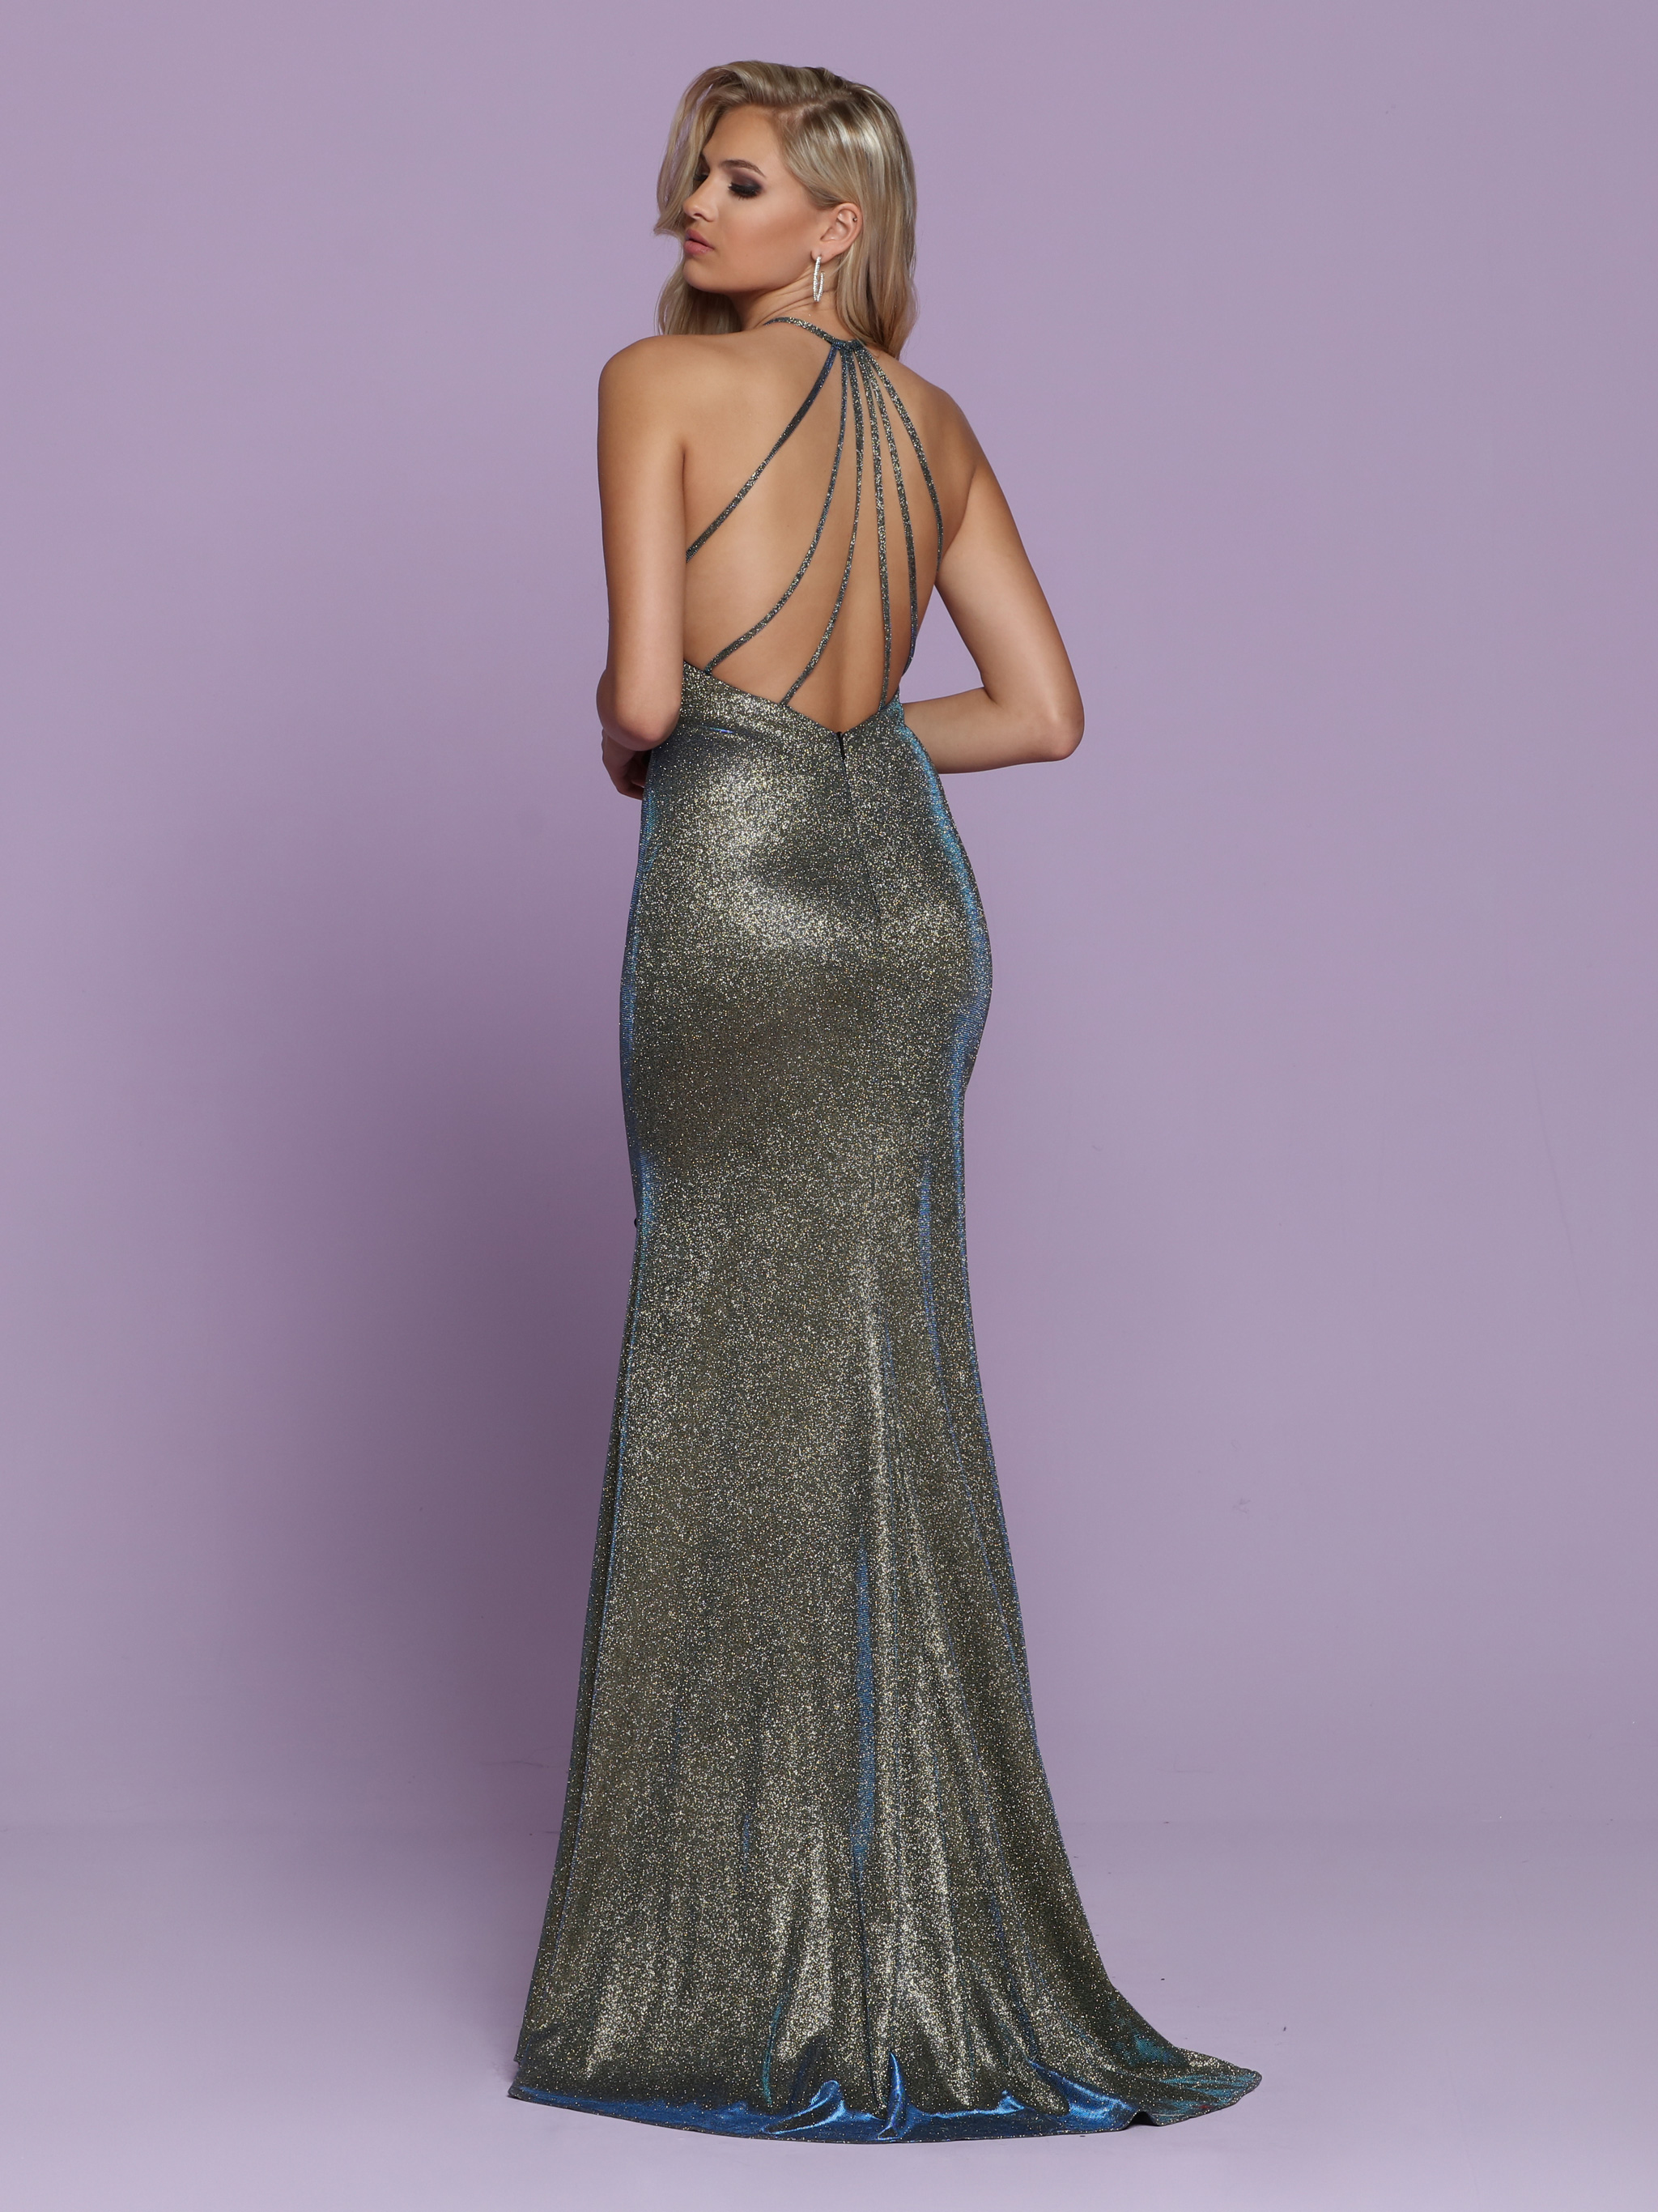 Image showing back view of style #72137